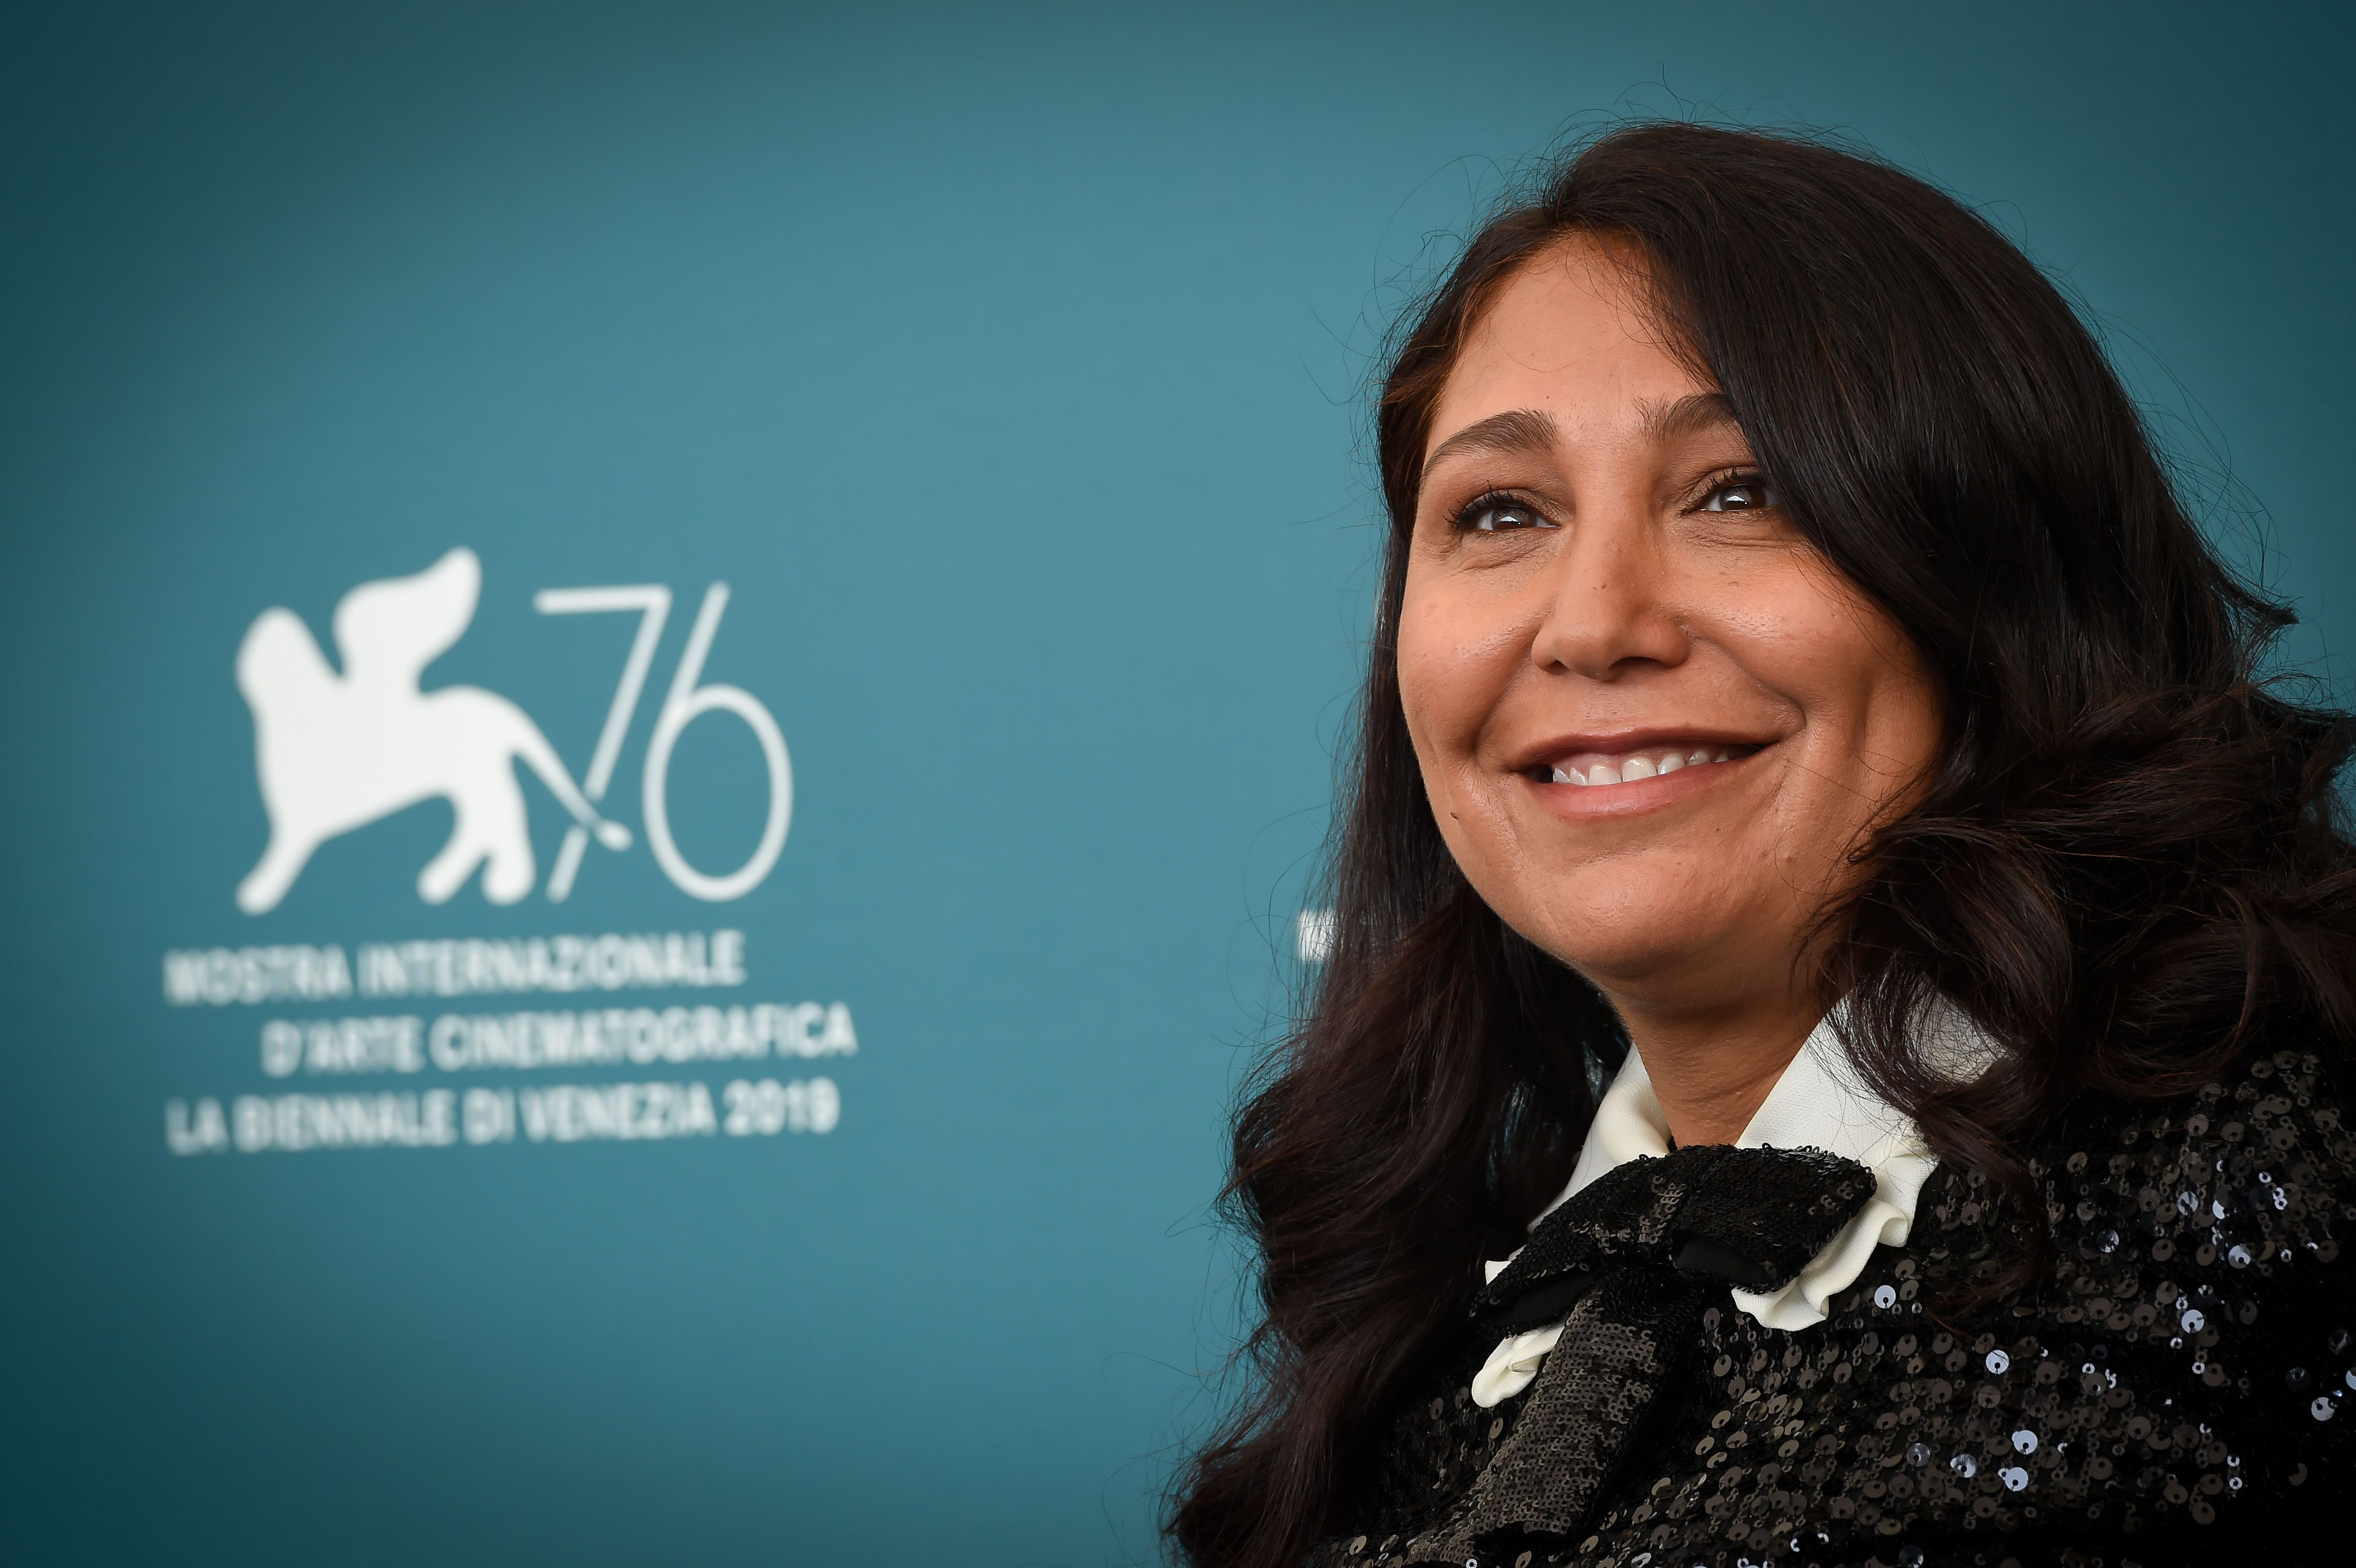 Haifaa Al-Mansour Was One of Only Two Female Directors at the Venice Film Festival. Her Voice Is More Important Than Ever